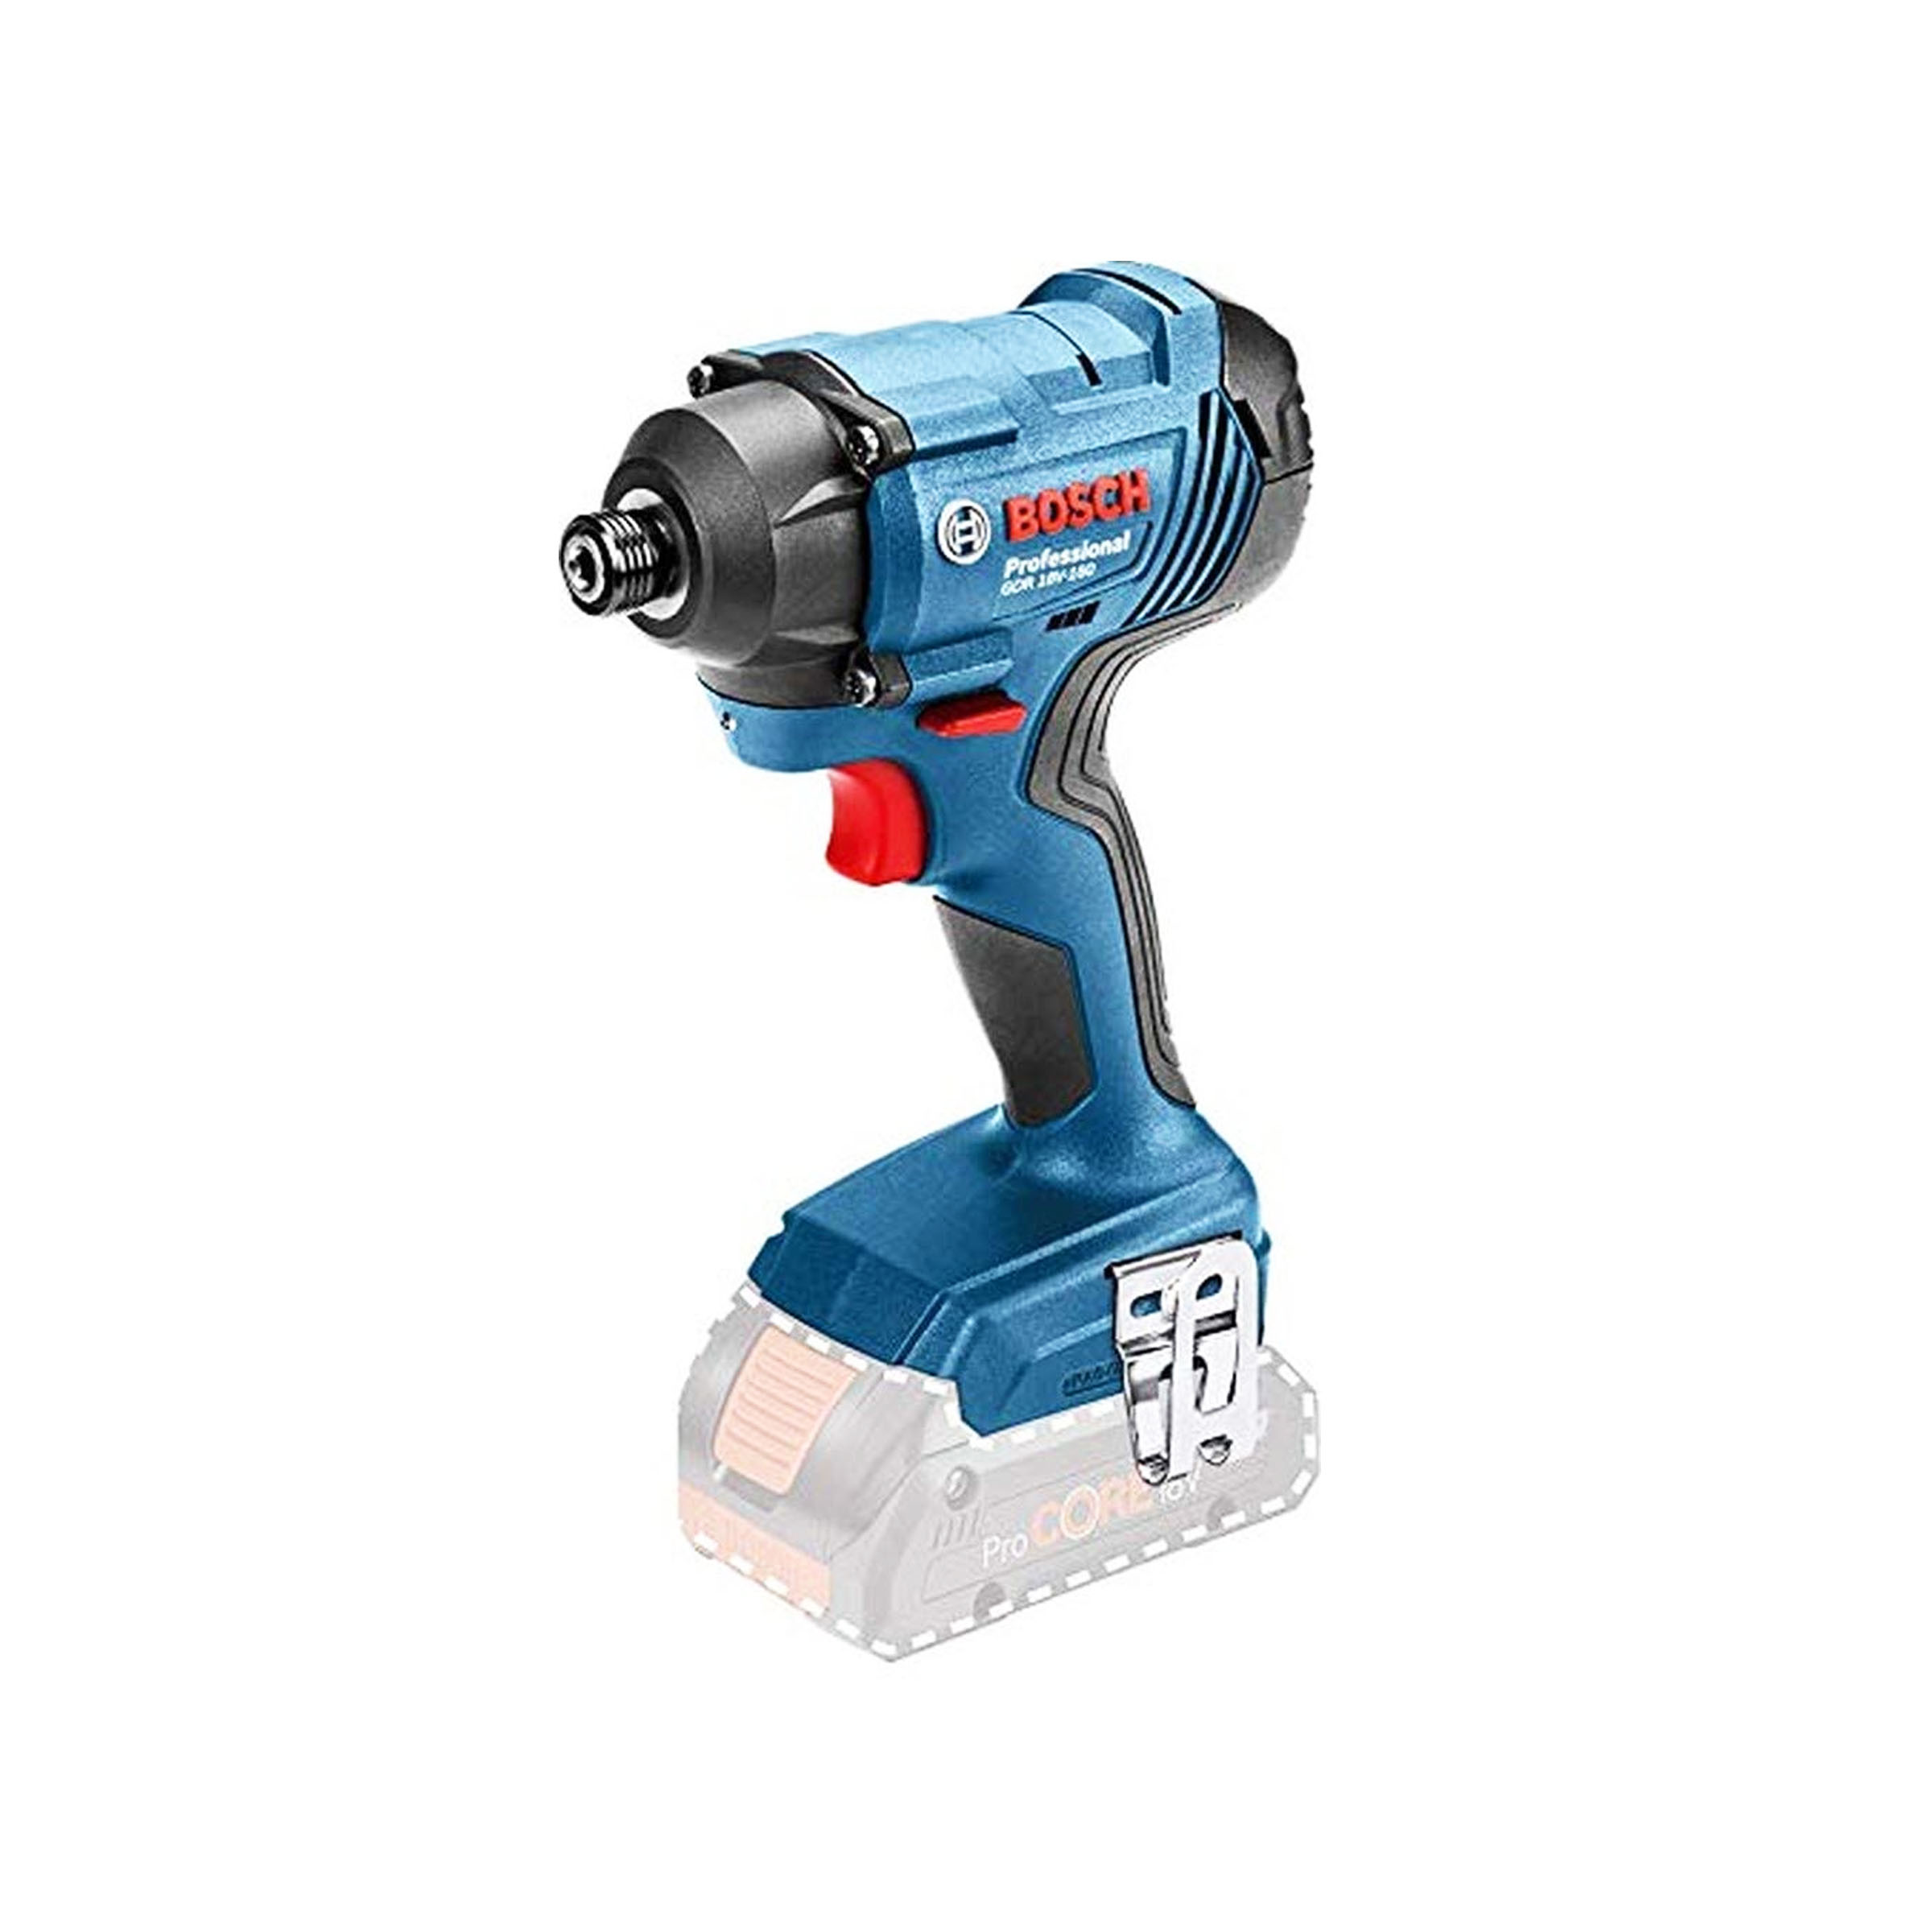 toptopdeal-Bosch Professional 18 V System Cordless Impact Wrench GDR 18V-160 (Without Batteries and Charger 1 2 L-Boxx Insert Device Box)